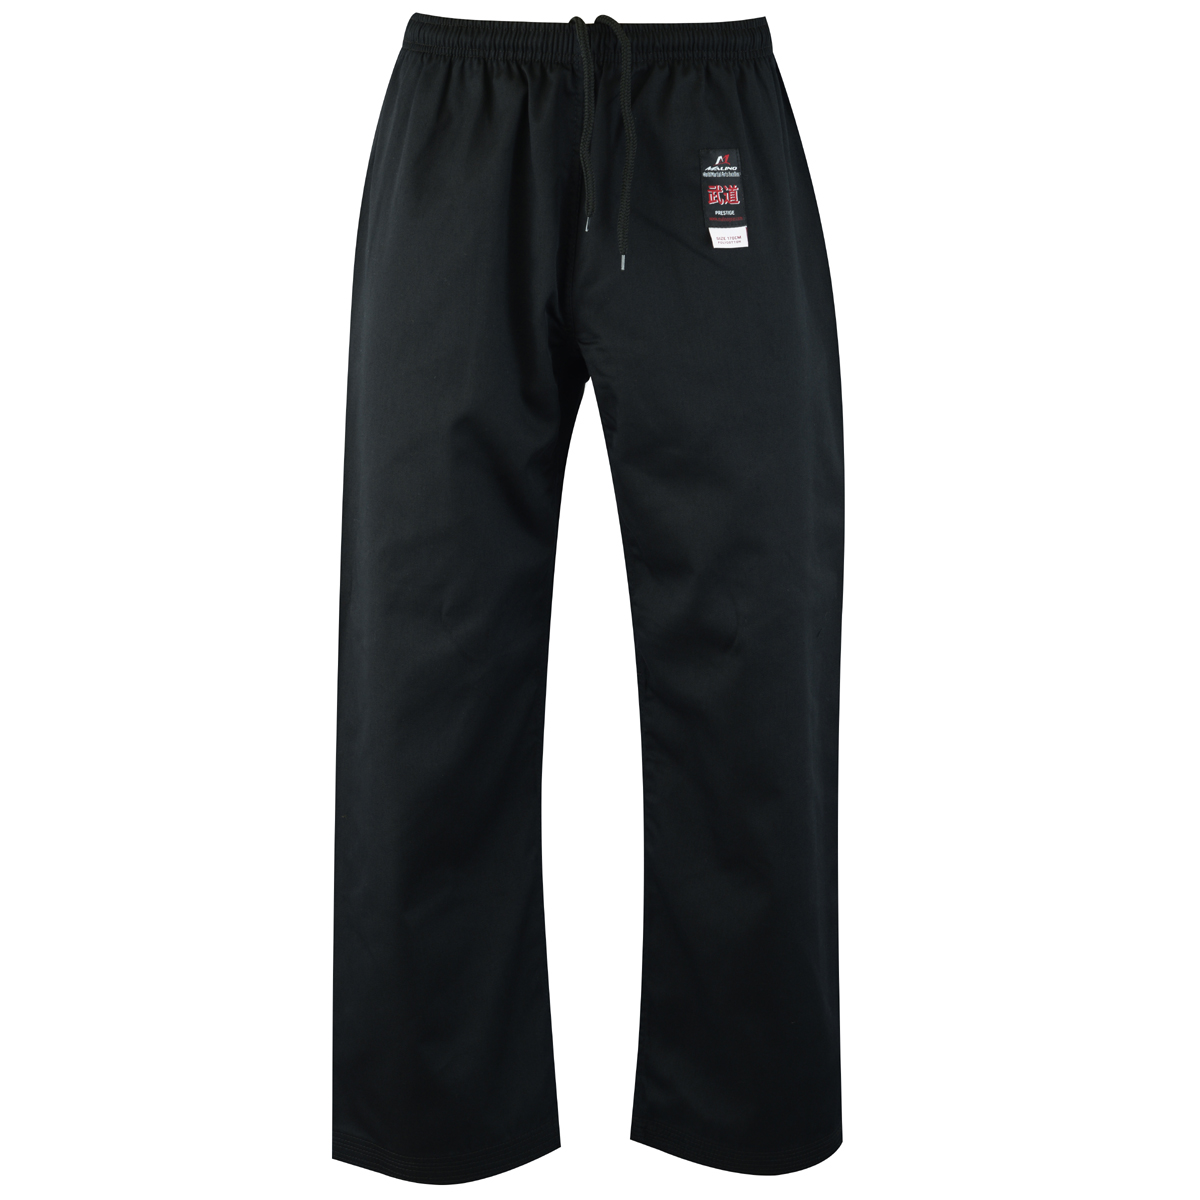 Malino Kids Student Karate Trousers Poly Cotton Black- 7oz